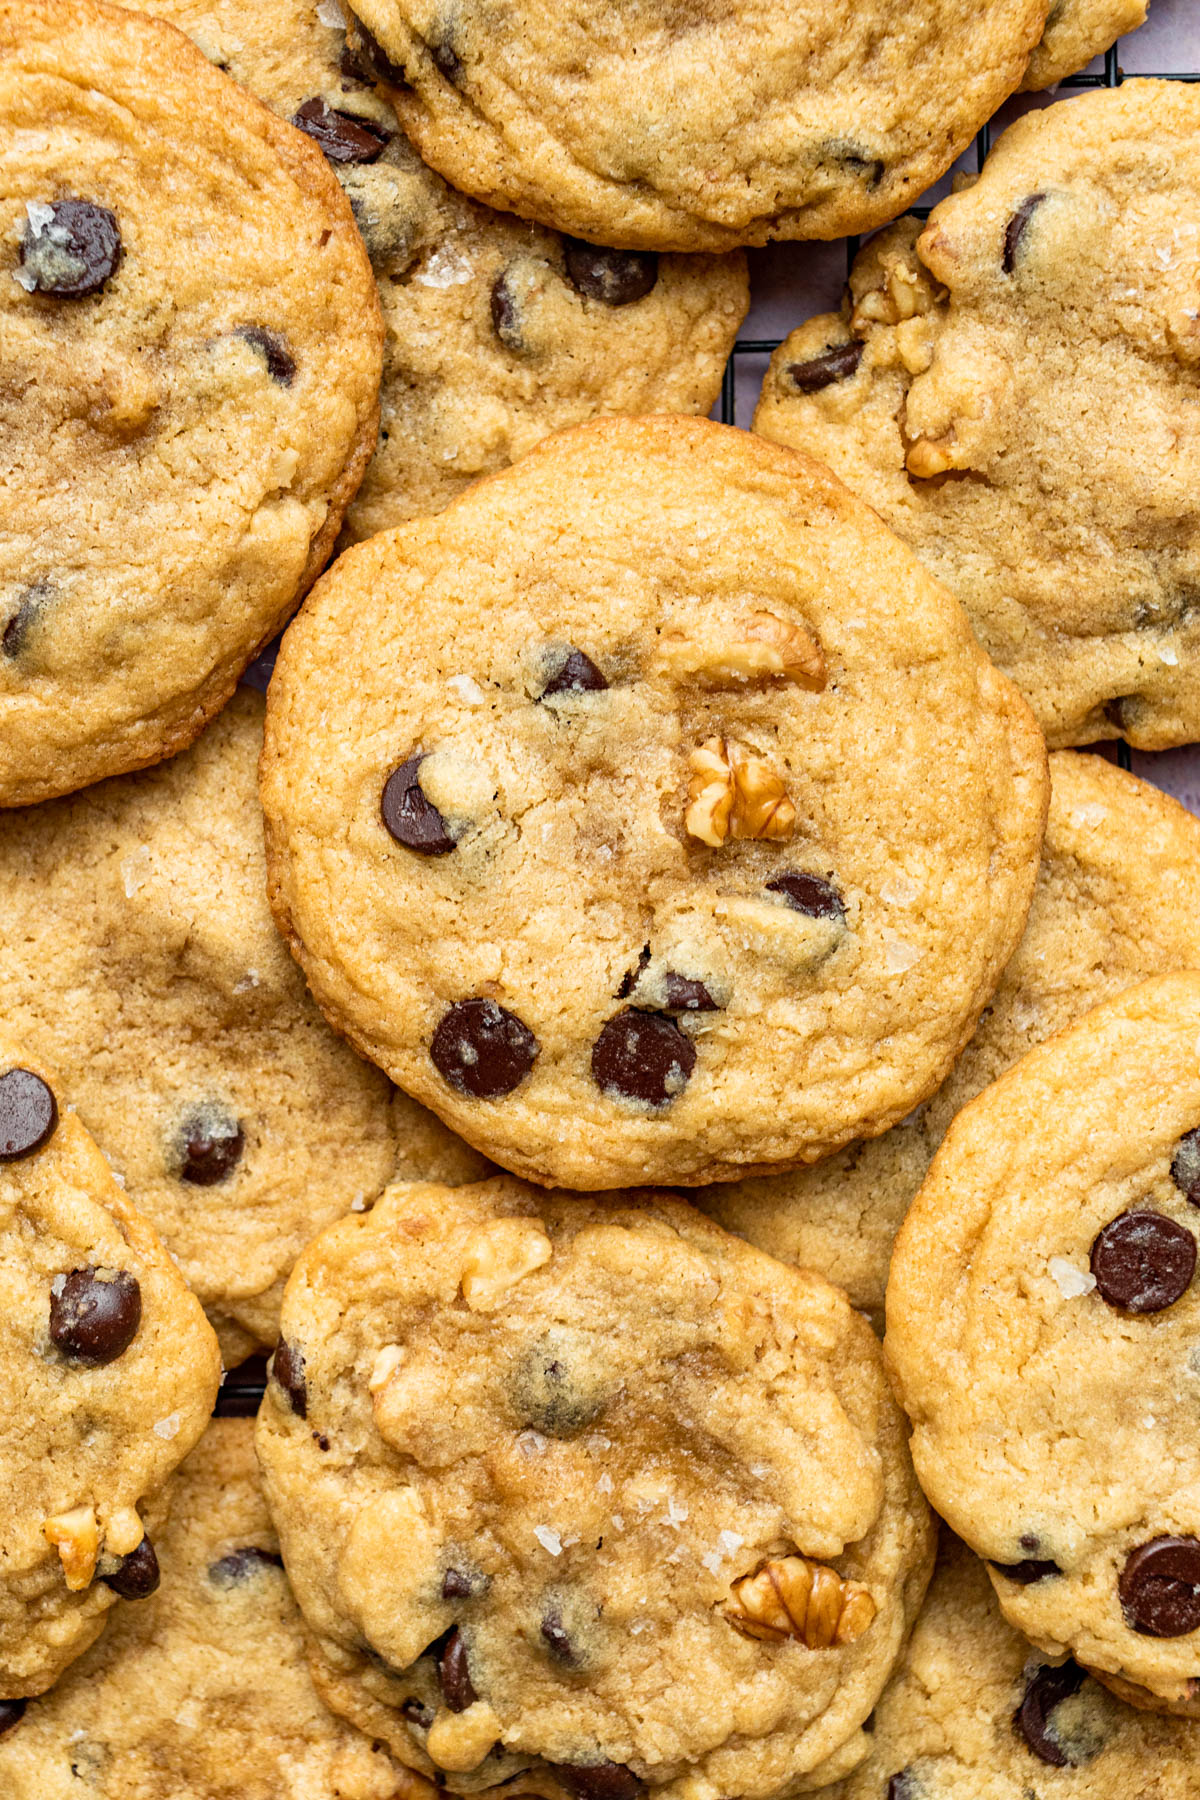 Overhead image of a pile of walnut chocolate chip cookies.